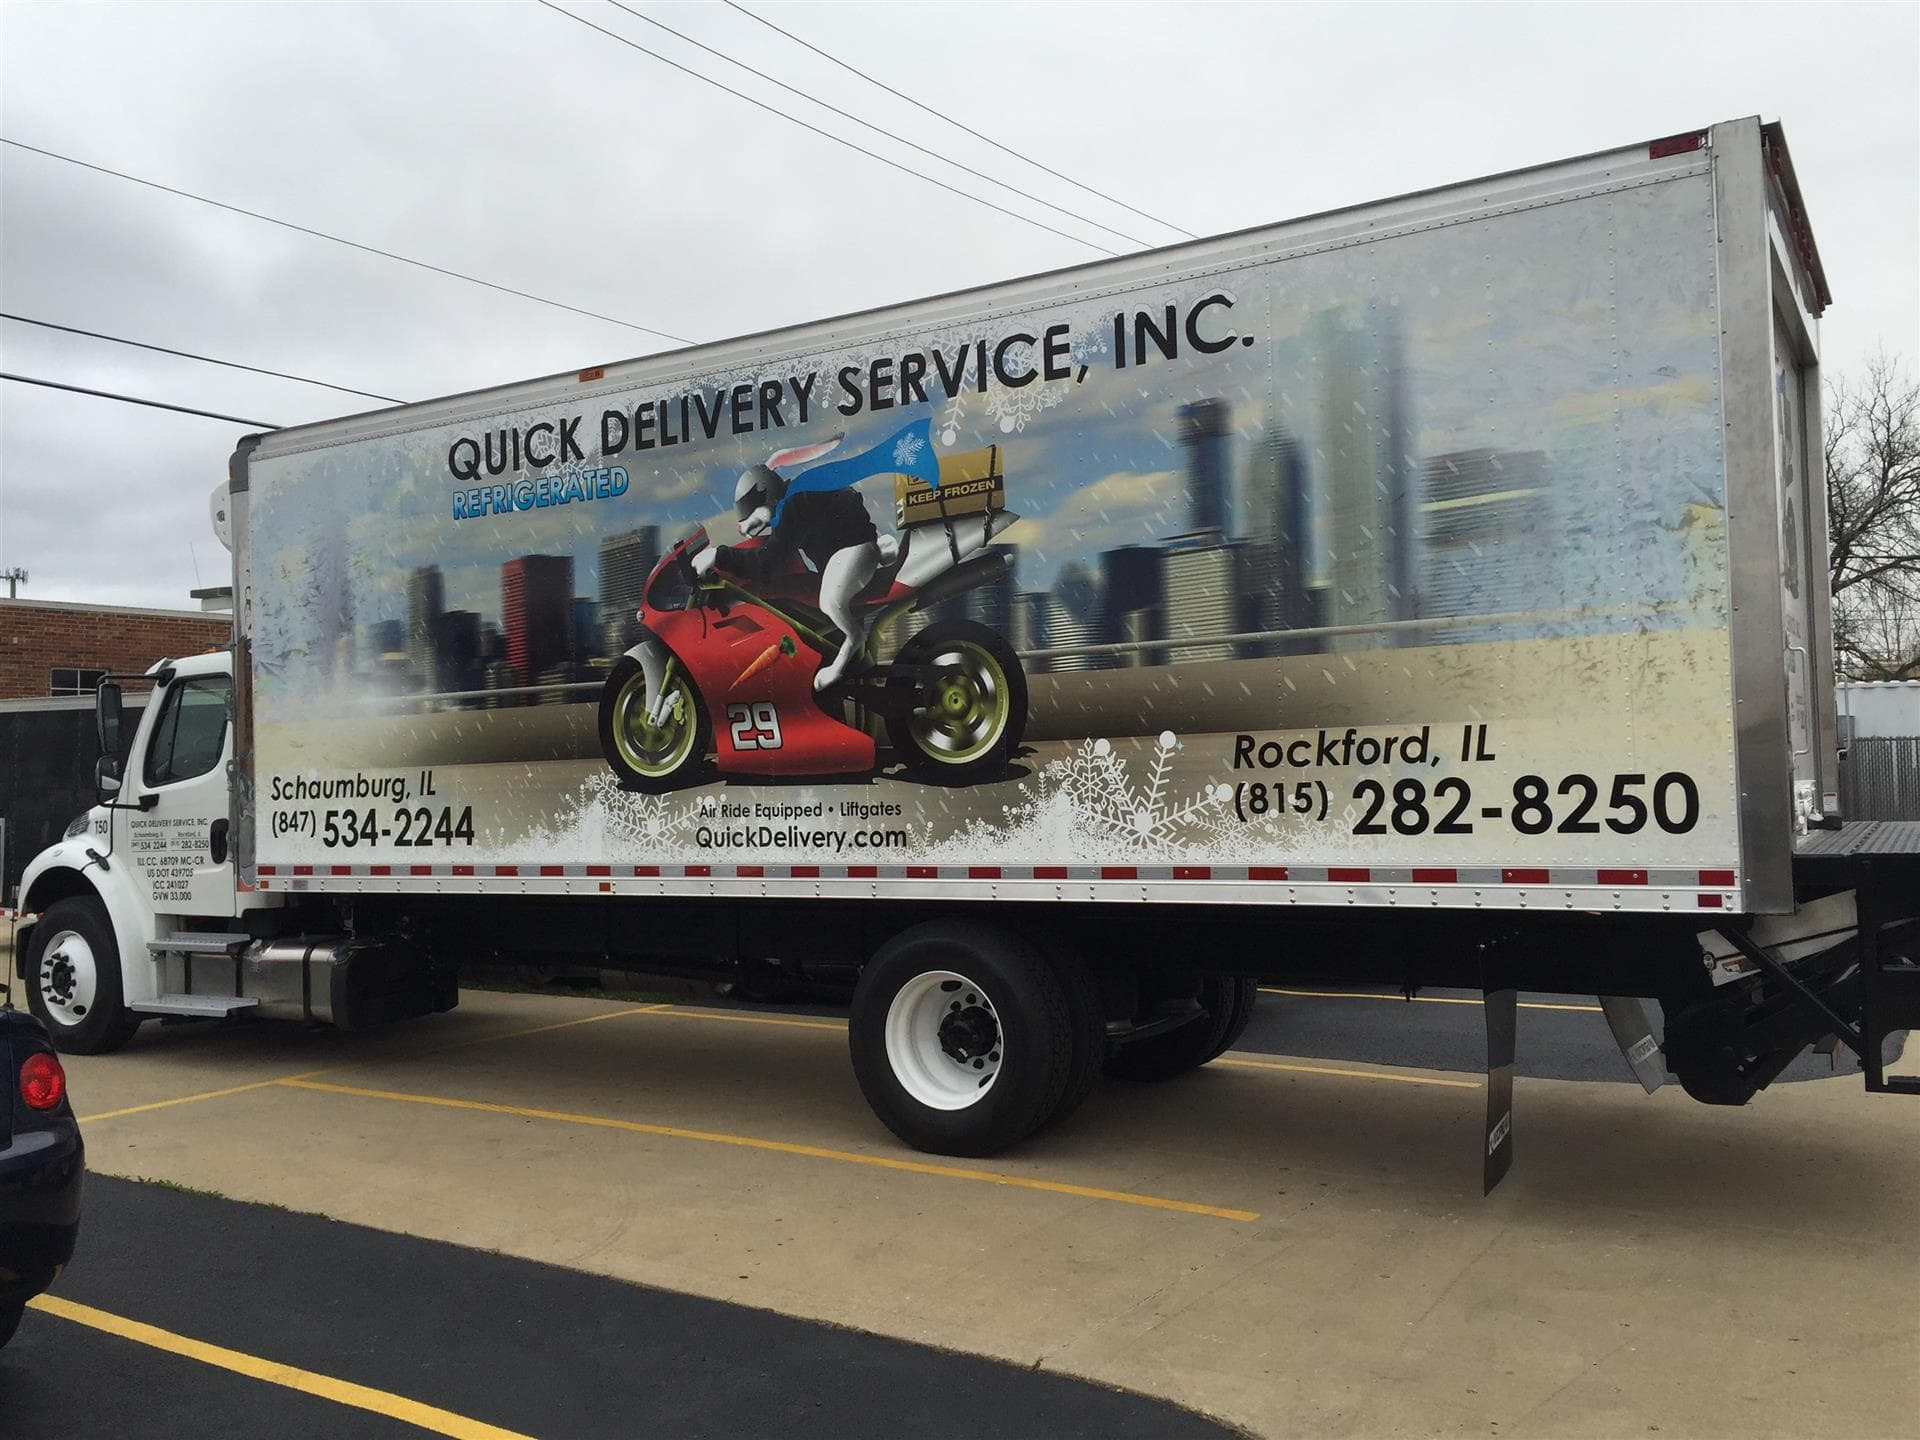 Quick Deliver Service, Inc. Truck Wrap